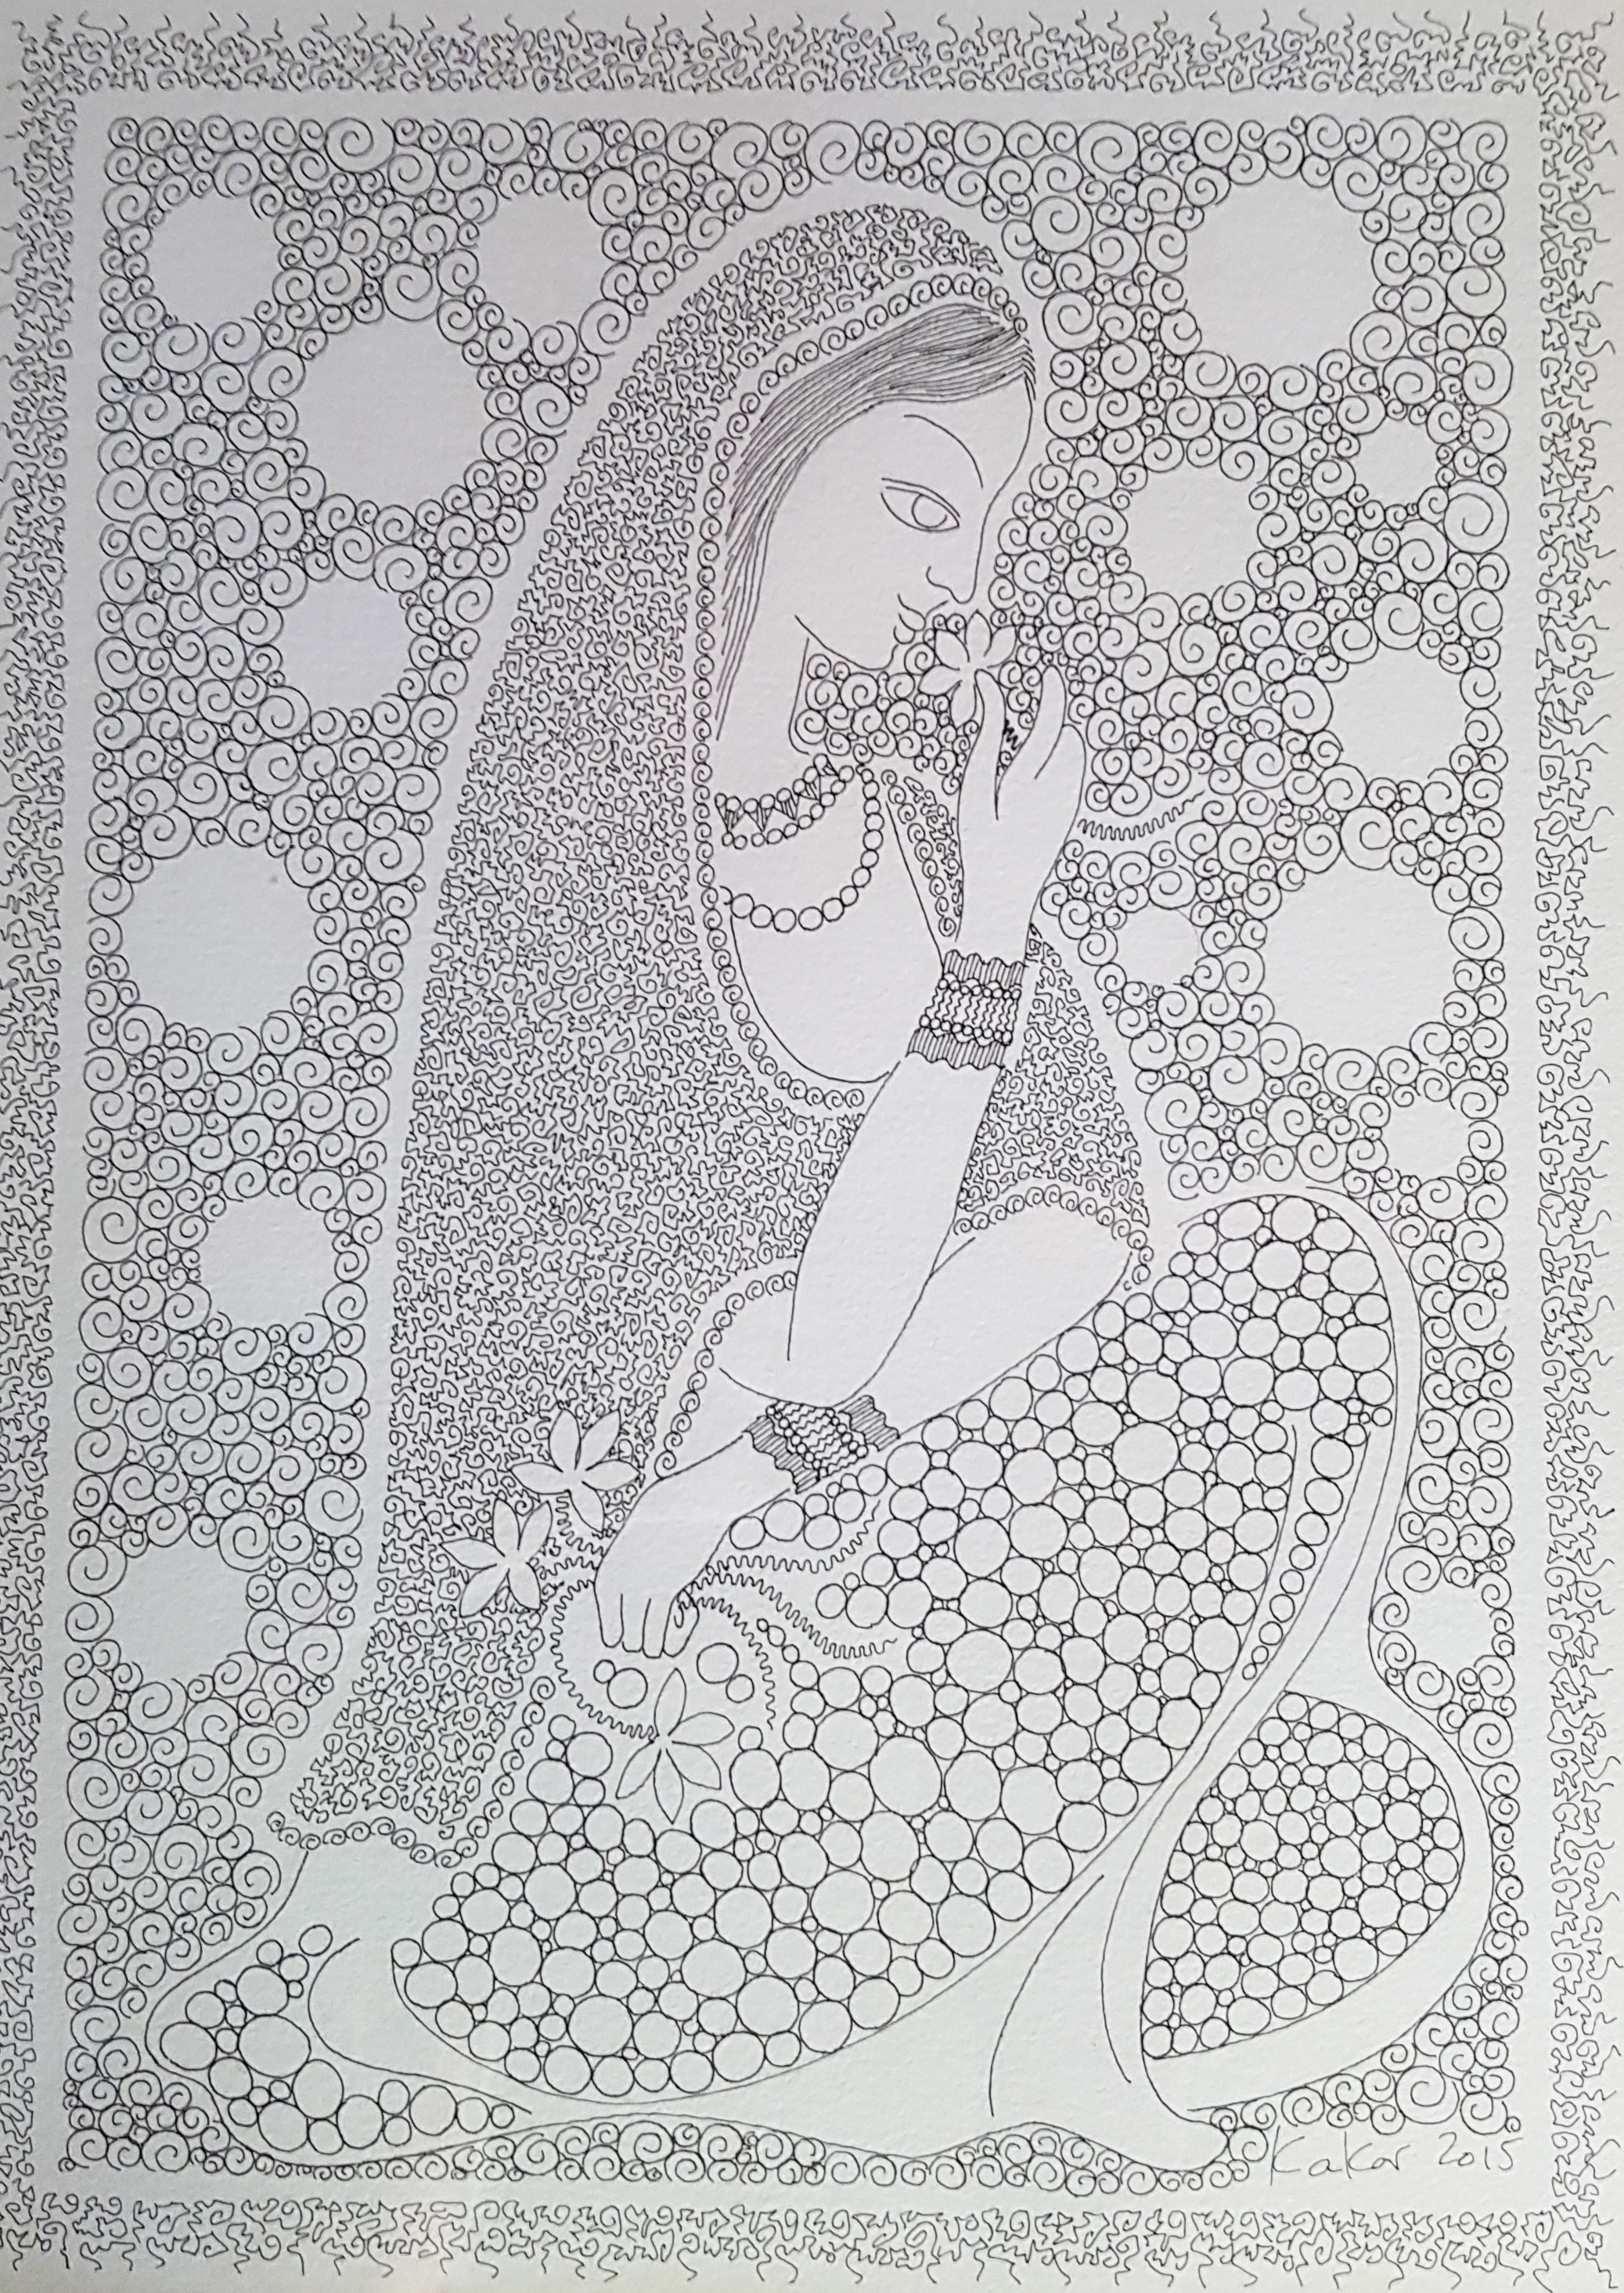 Women and Flower, 2014